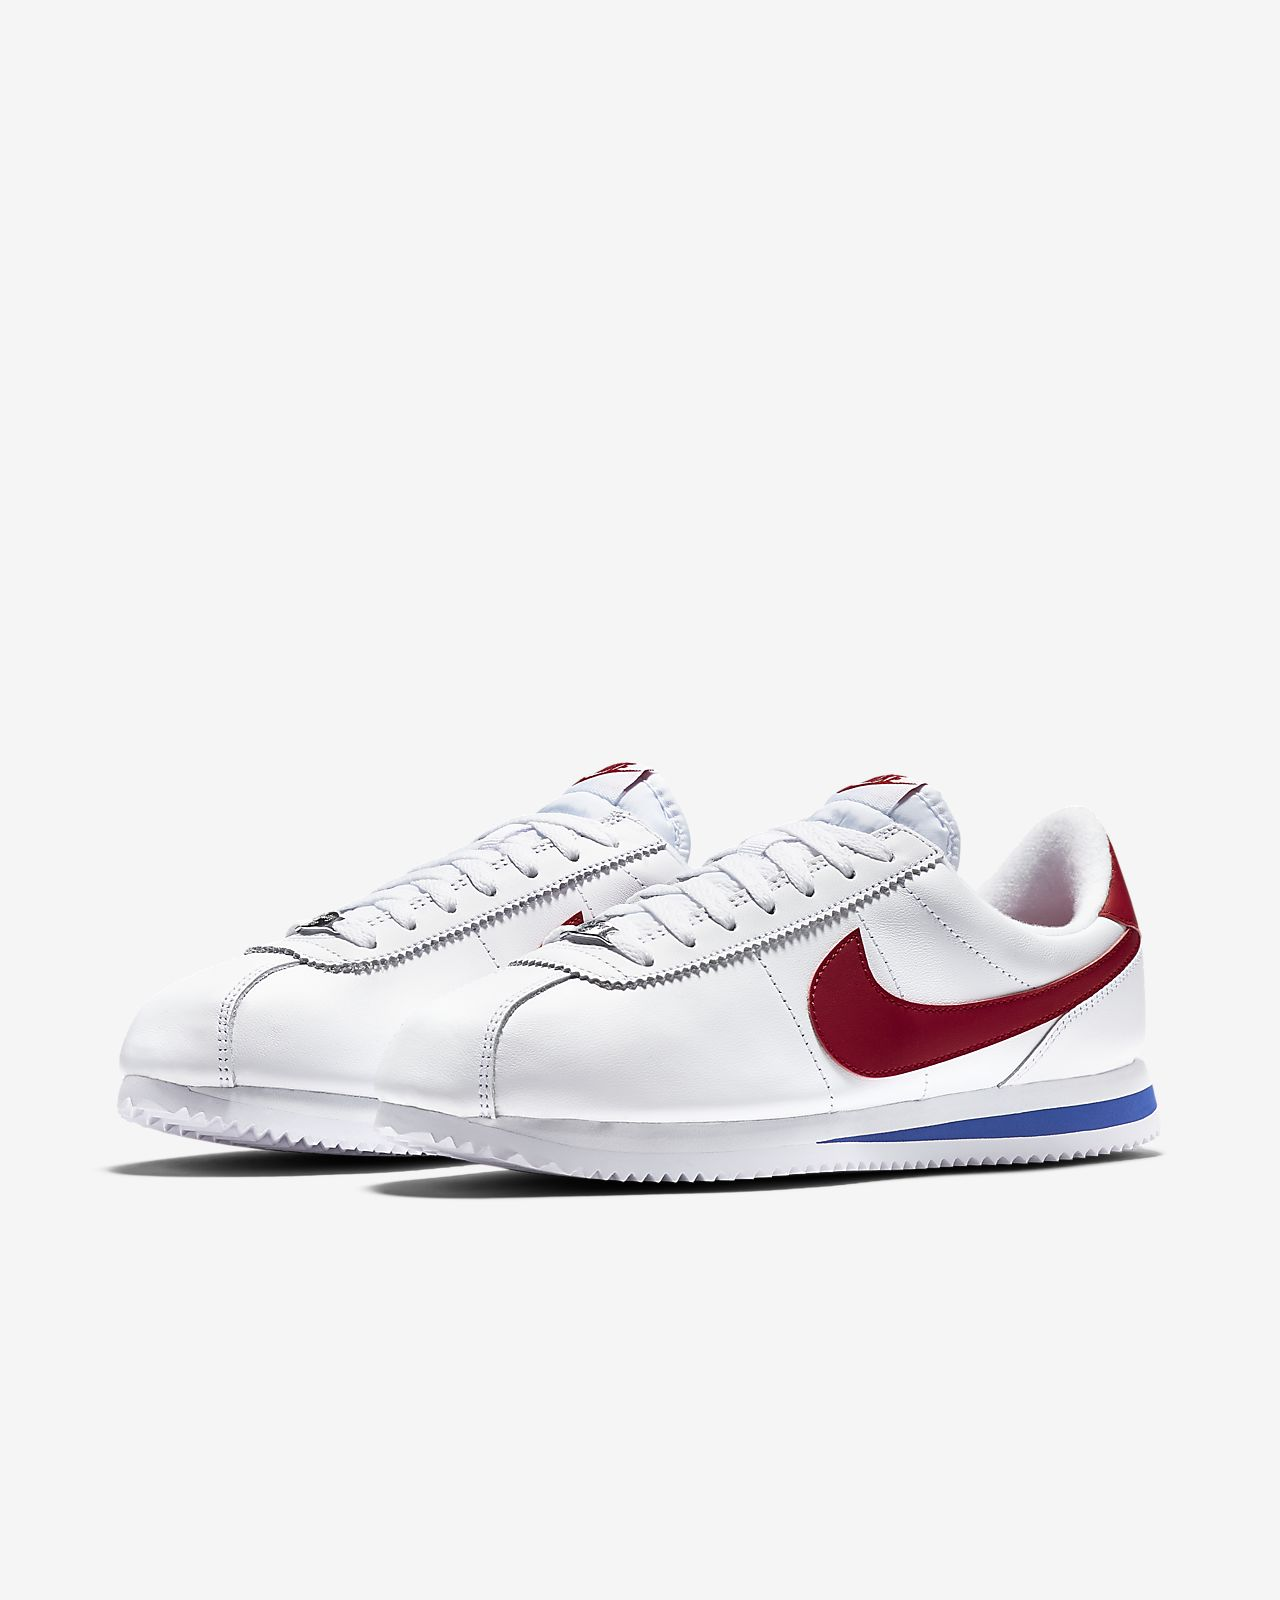 buy online 8d322 1fda9 ... Nike Cortez Basic Leather OG Men s Shoe